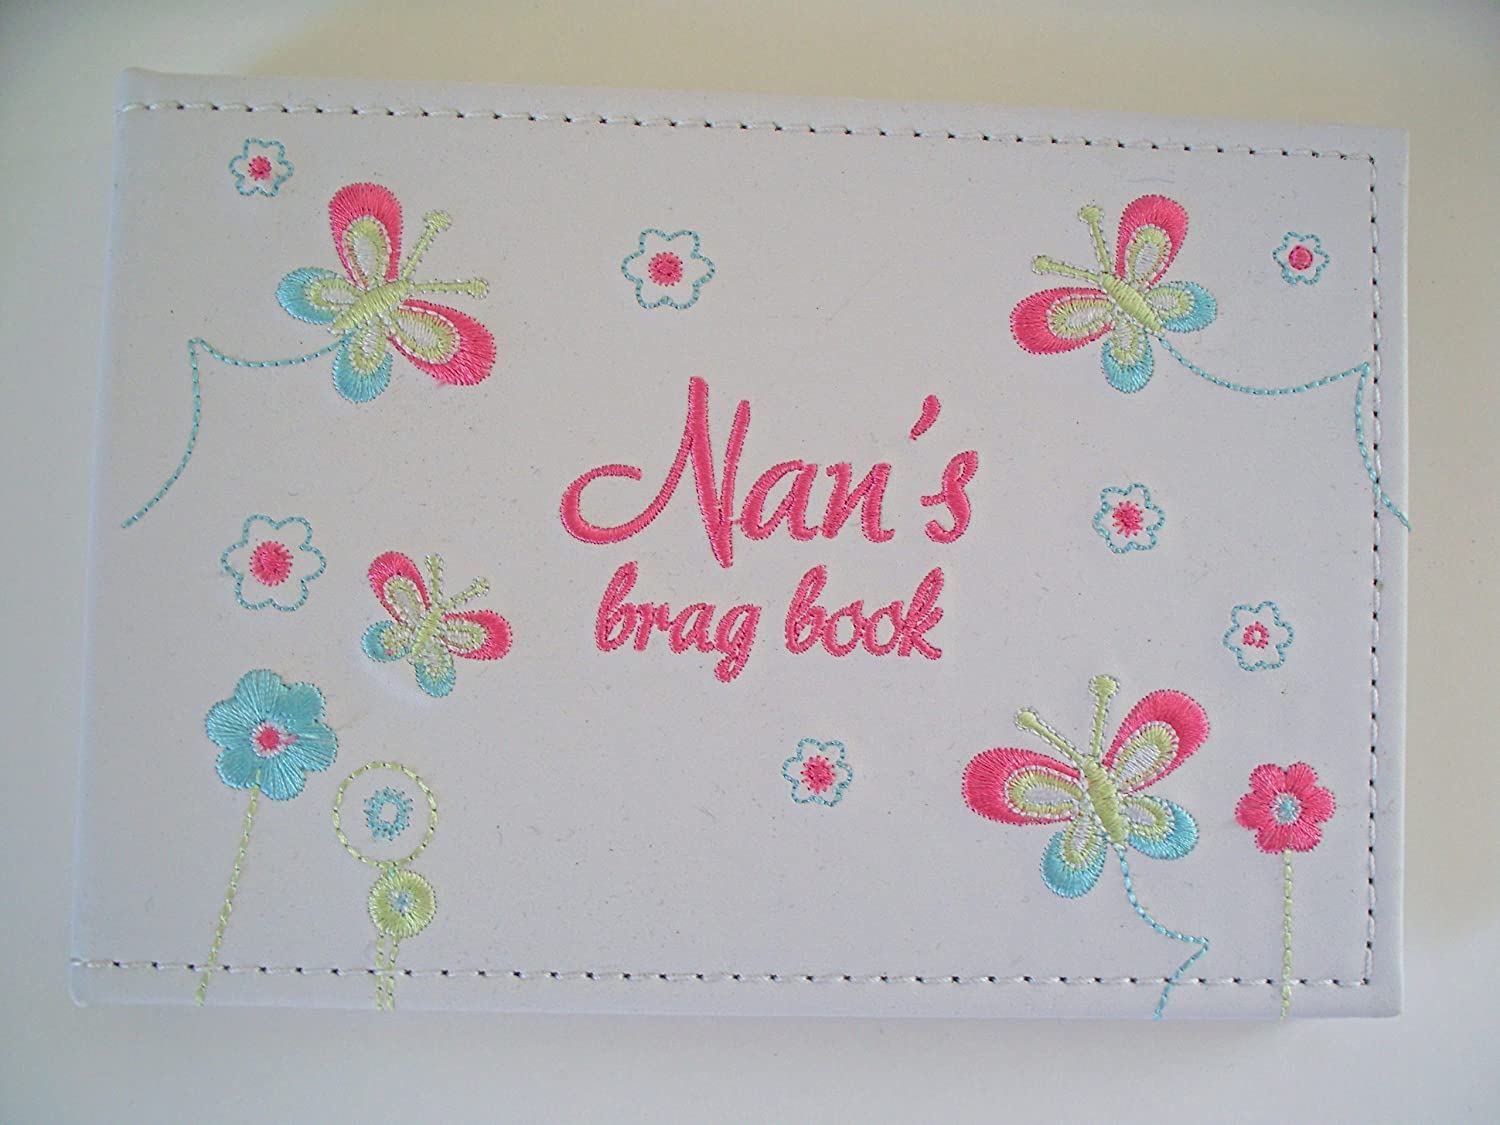 NAN'S BRAG book photo album embroidered flowers butterflies ideal gift JULIANA